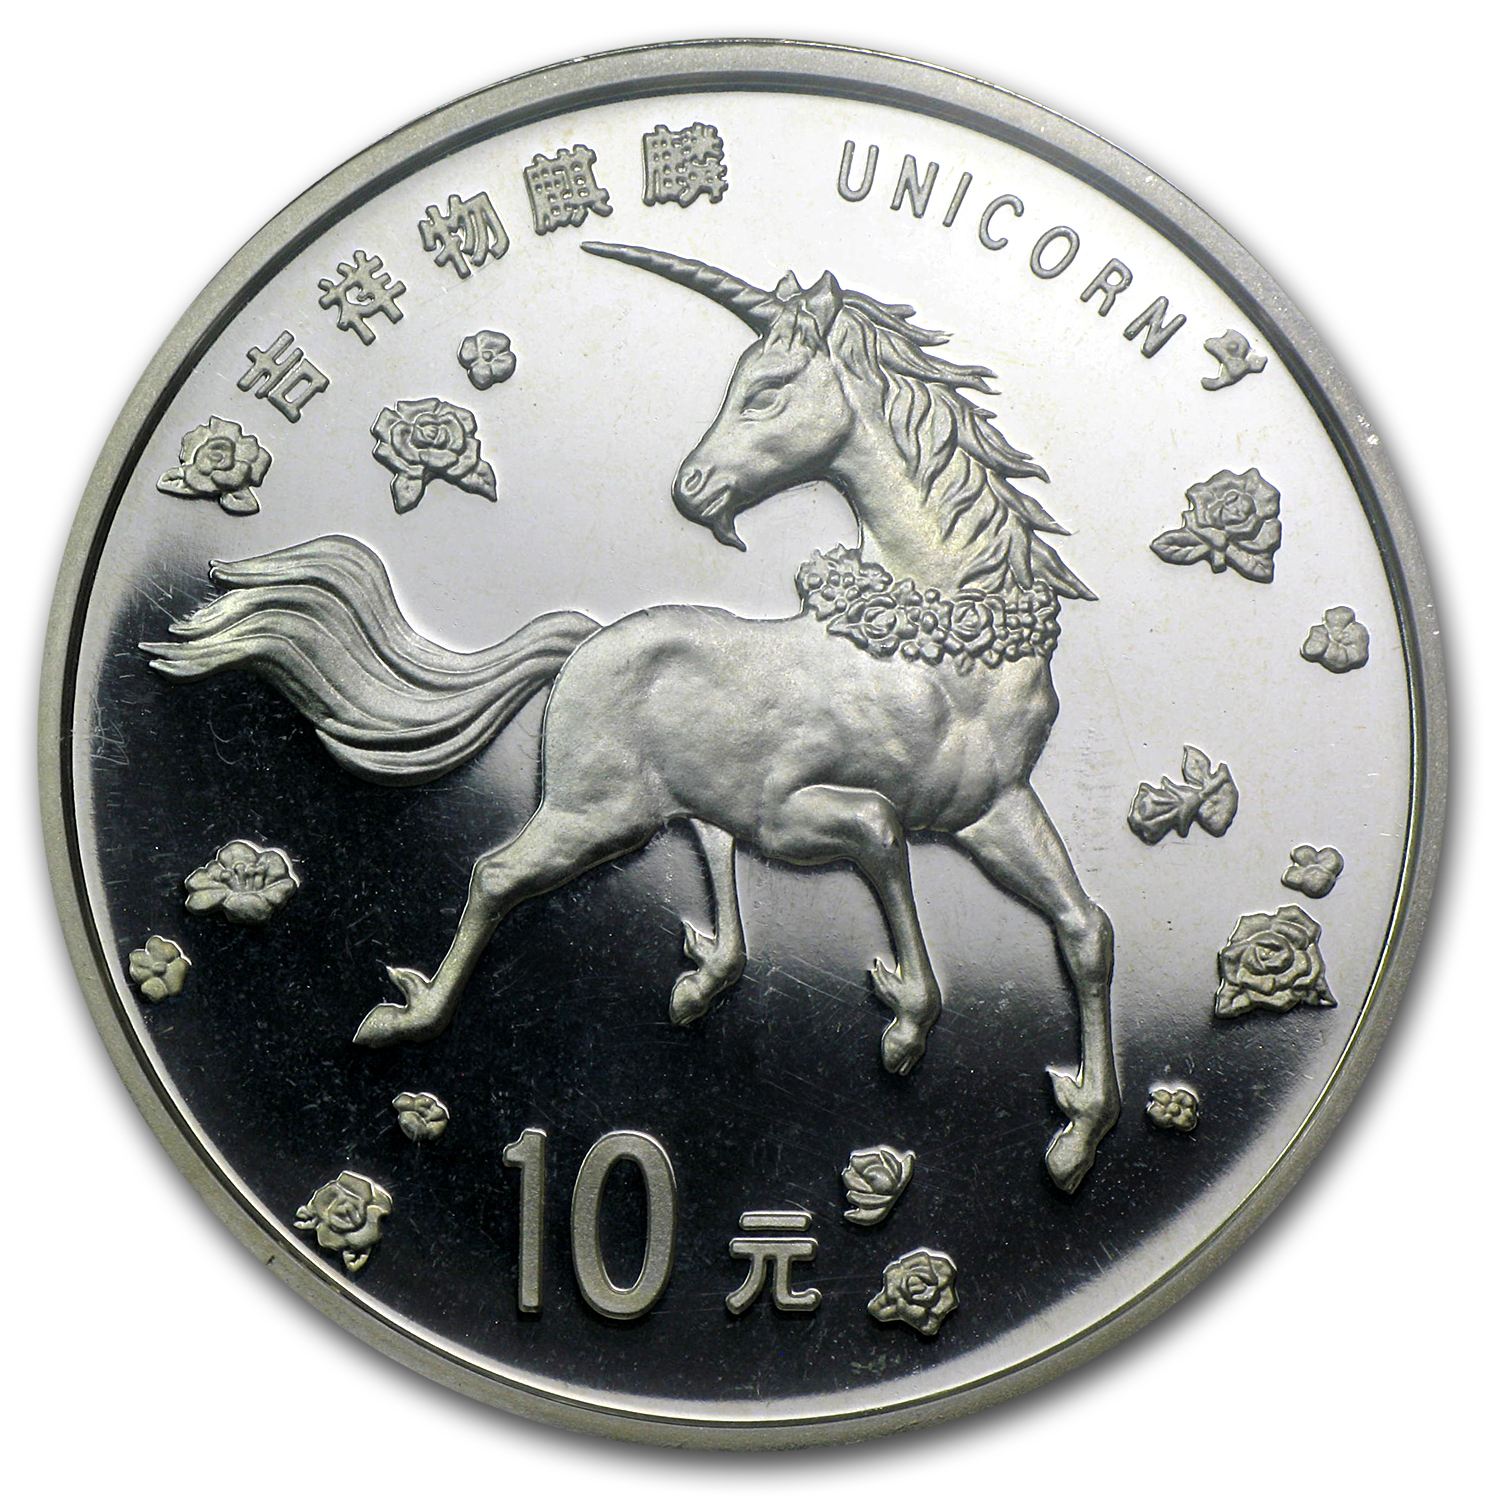 China 1997 (10 Yuan Unicorn) - Silver Coin PCGS PL-68